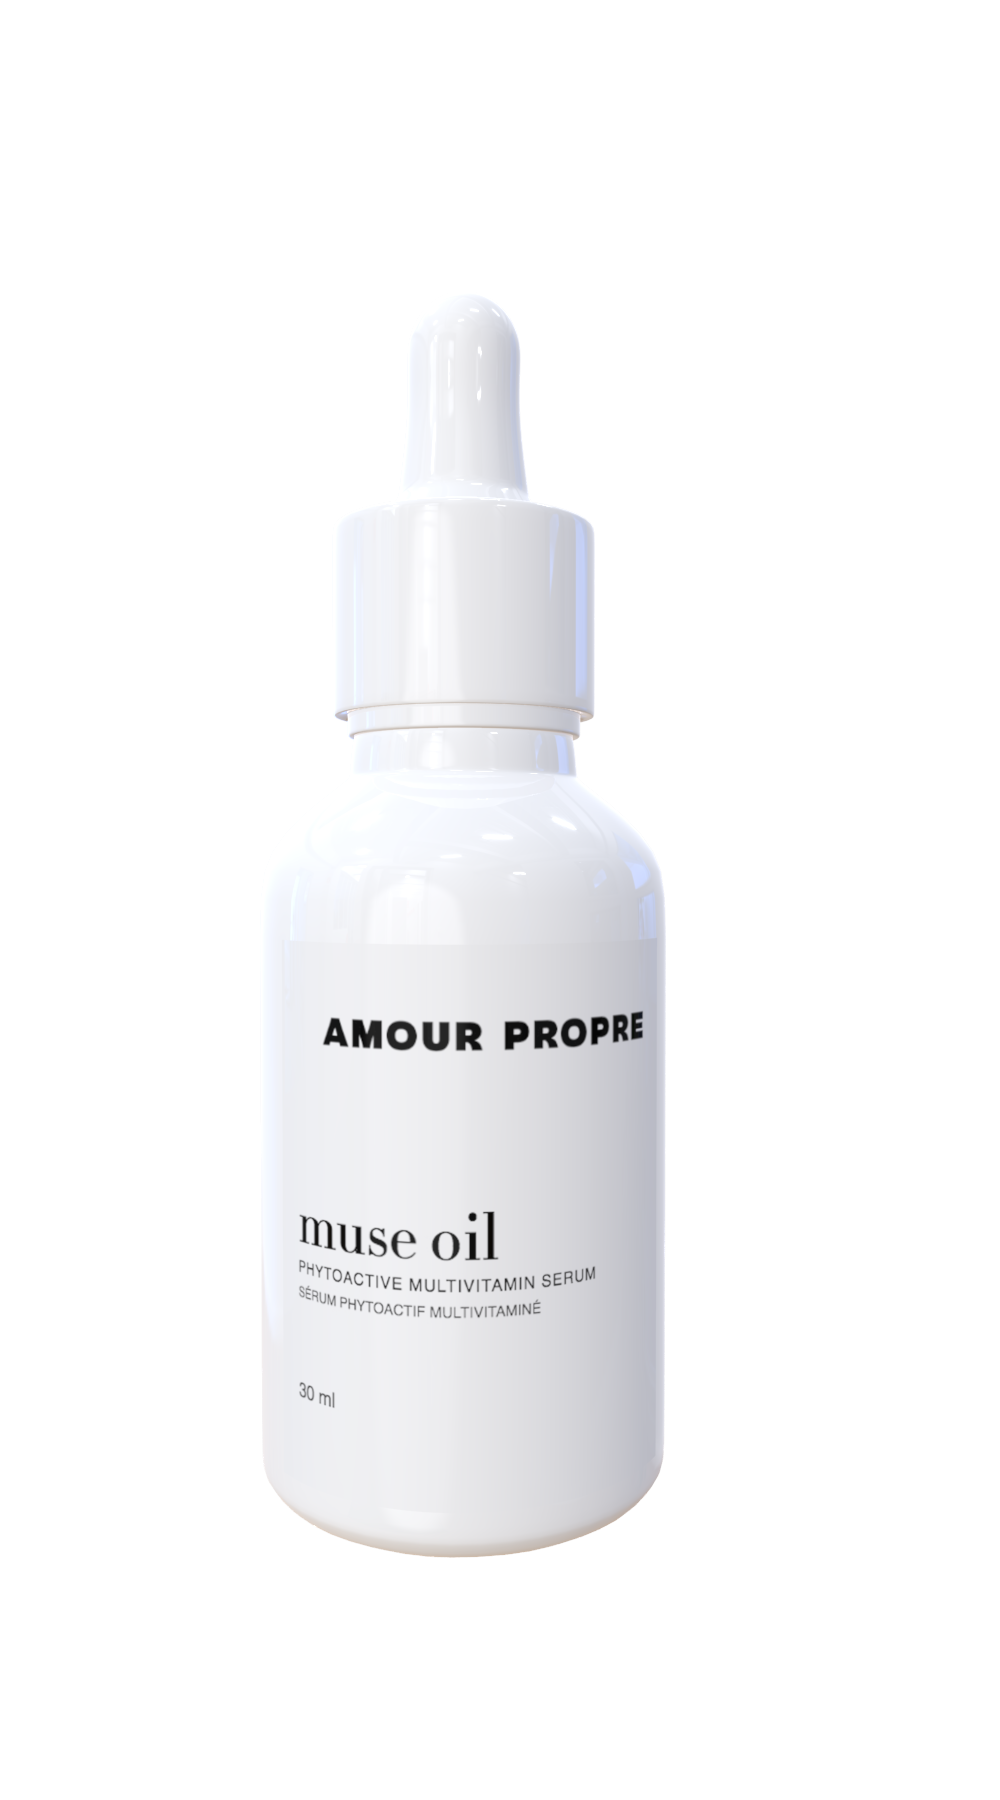 Muse Oil | Nourishing & renewing active serum | Amour Propre Beauty